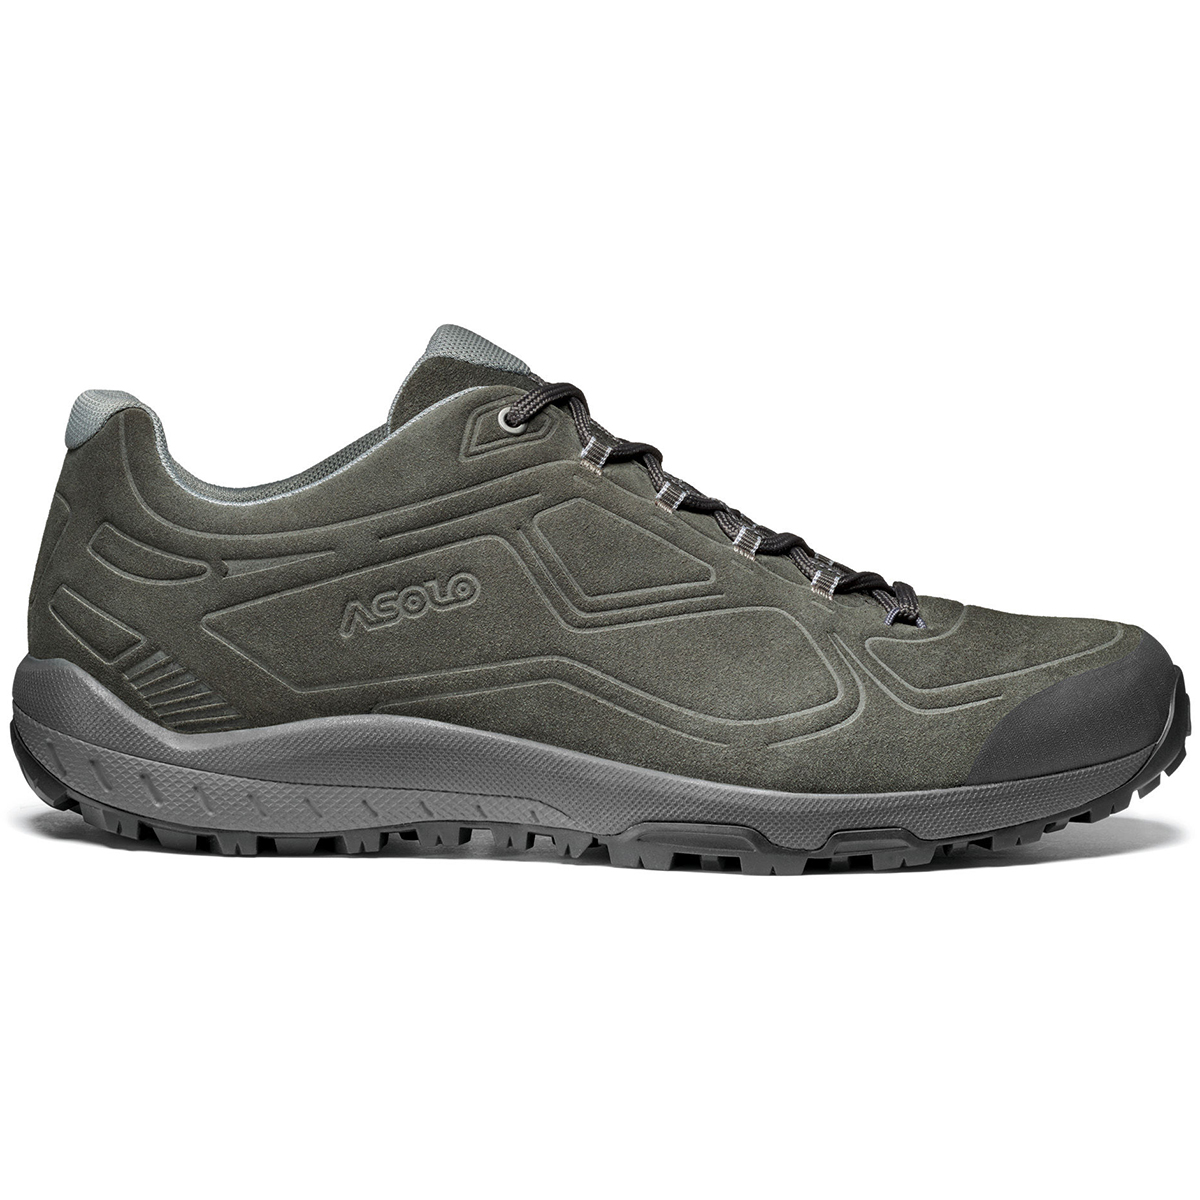 Asolo Men's Flyer Leather Hiking Shoe - Black, 10.5